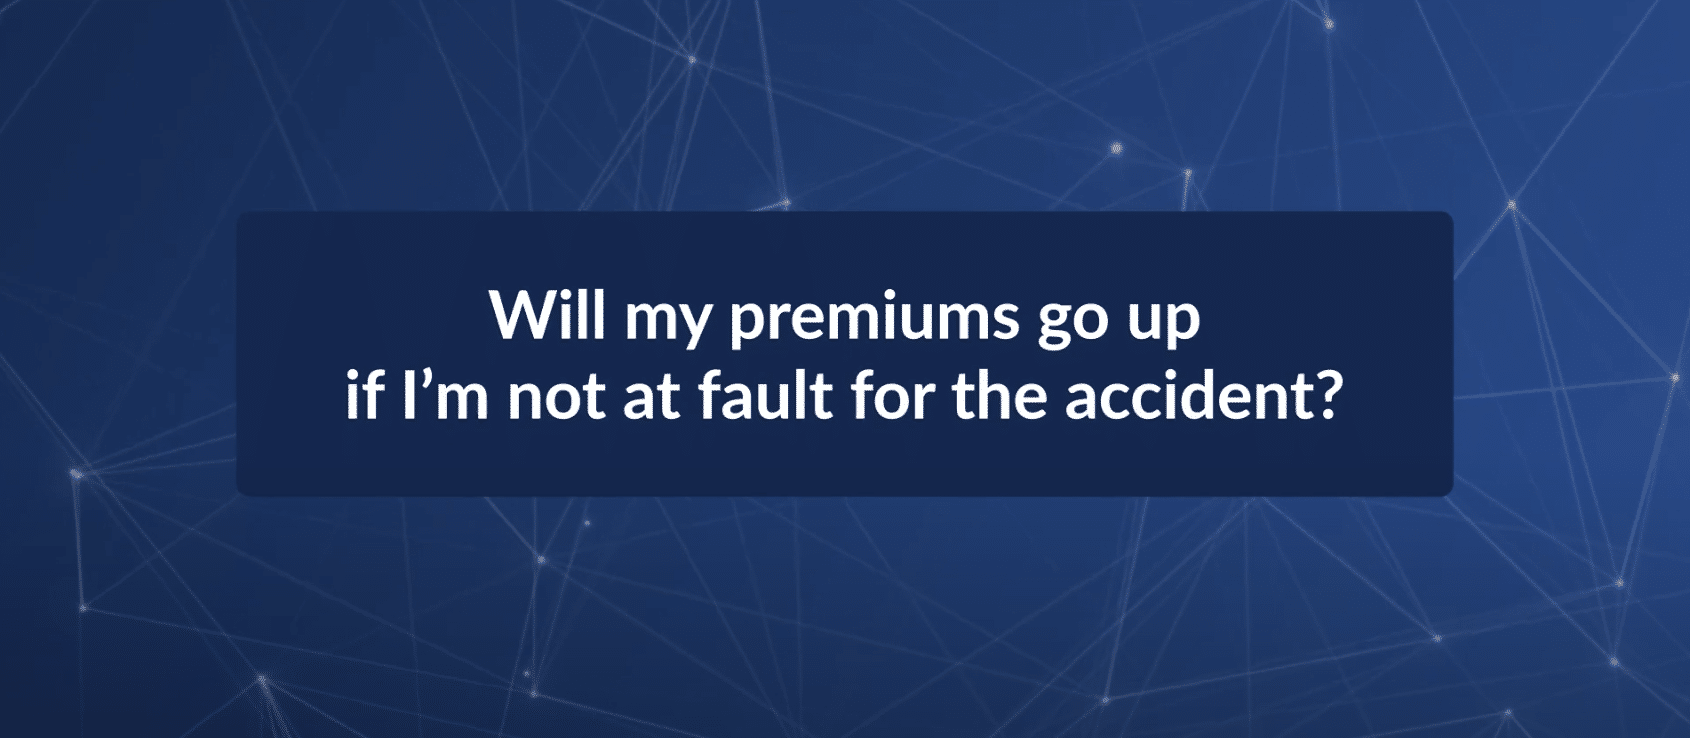 Will My Insurance Premiums Go Up if I'm Not At Fault for the Accident?